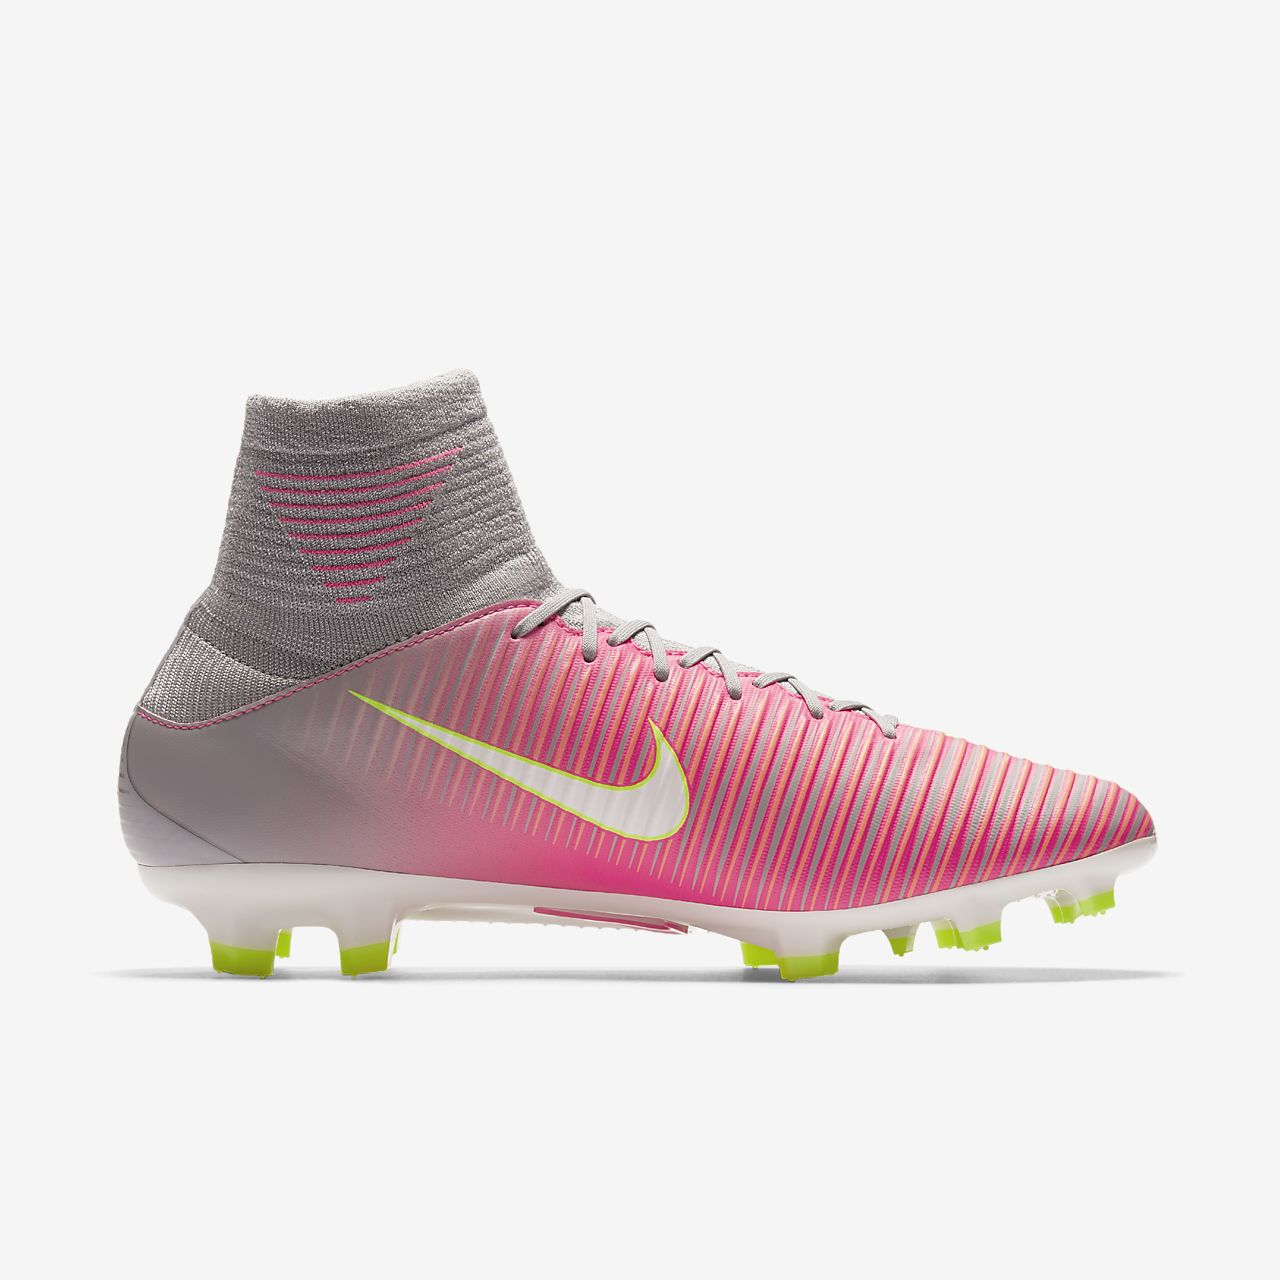 official photos 5962e 7a310 pink nike football boots